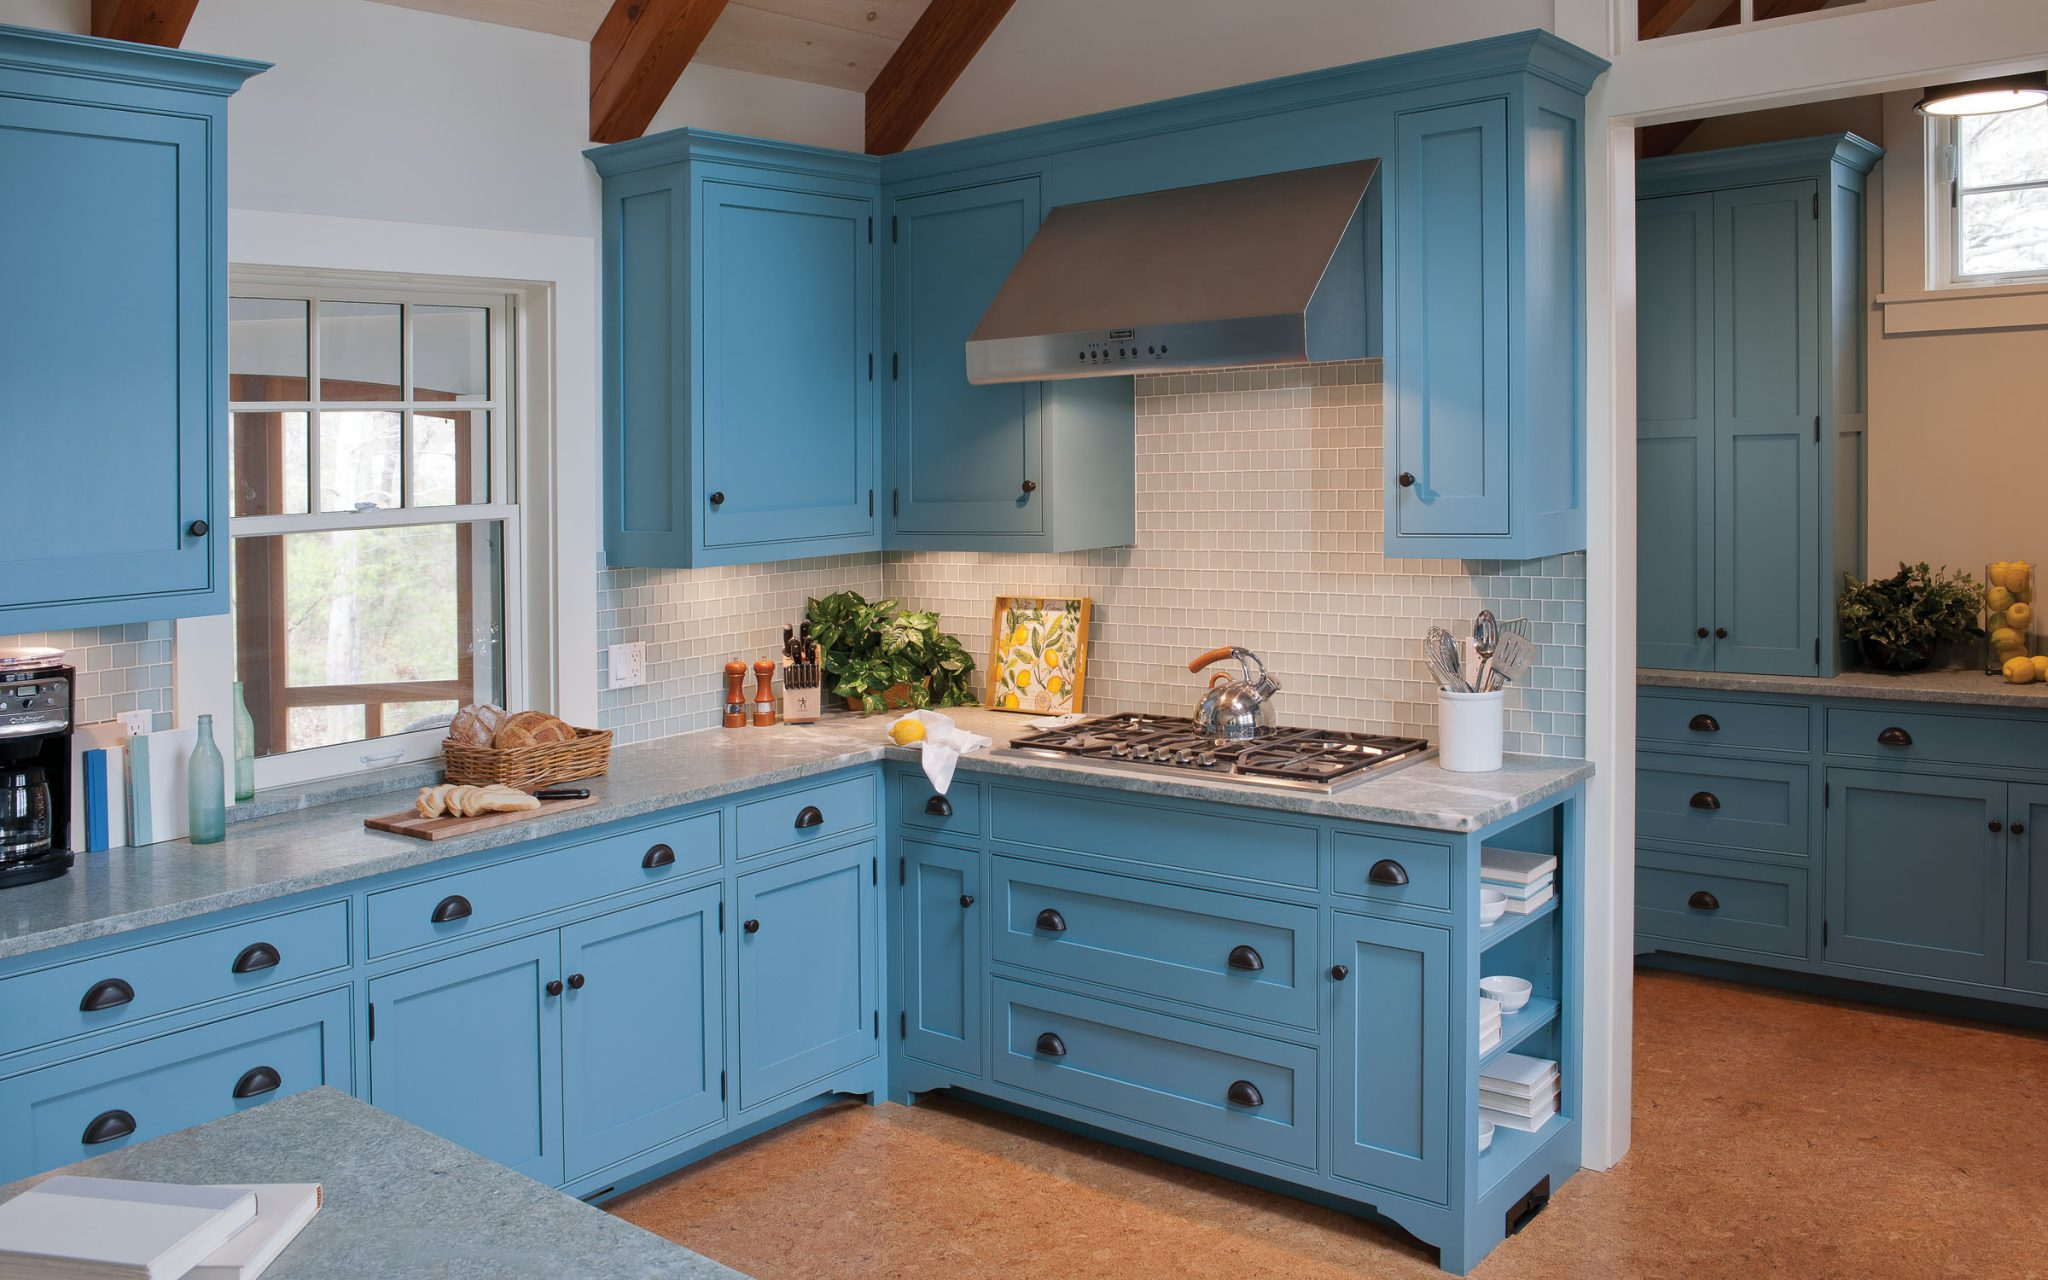 Colorful Kitchen Design Ideas - Elizabeth Swartz Interiors